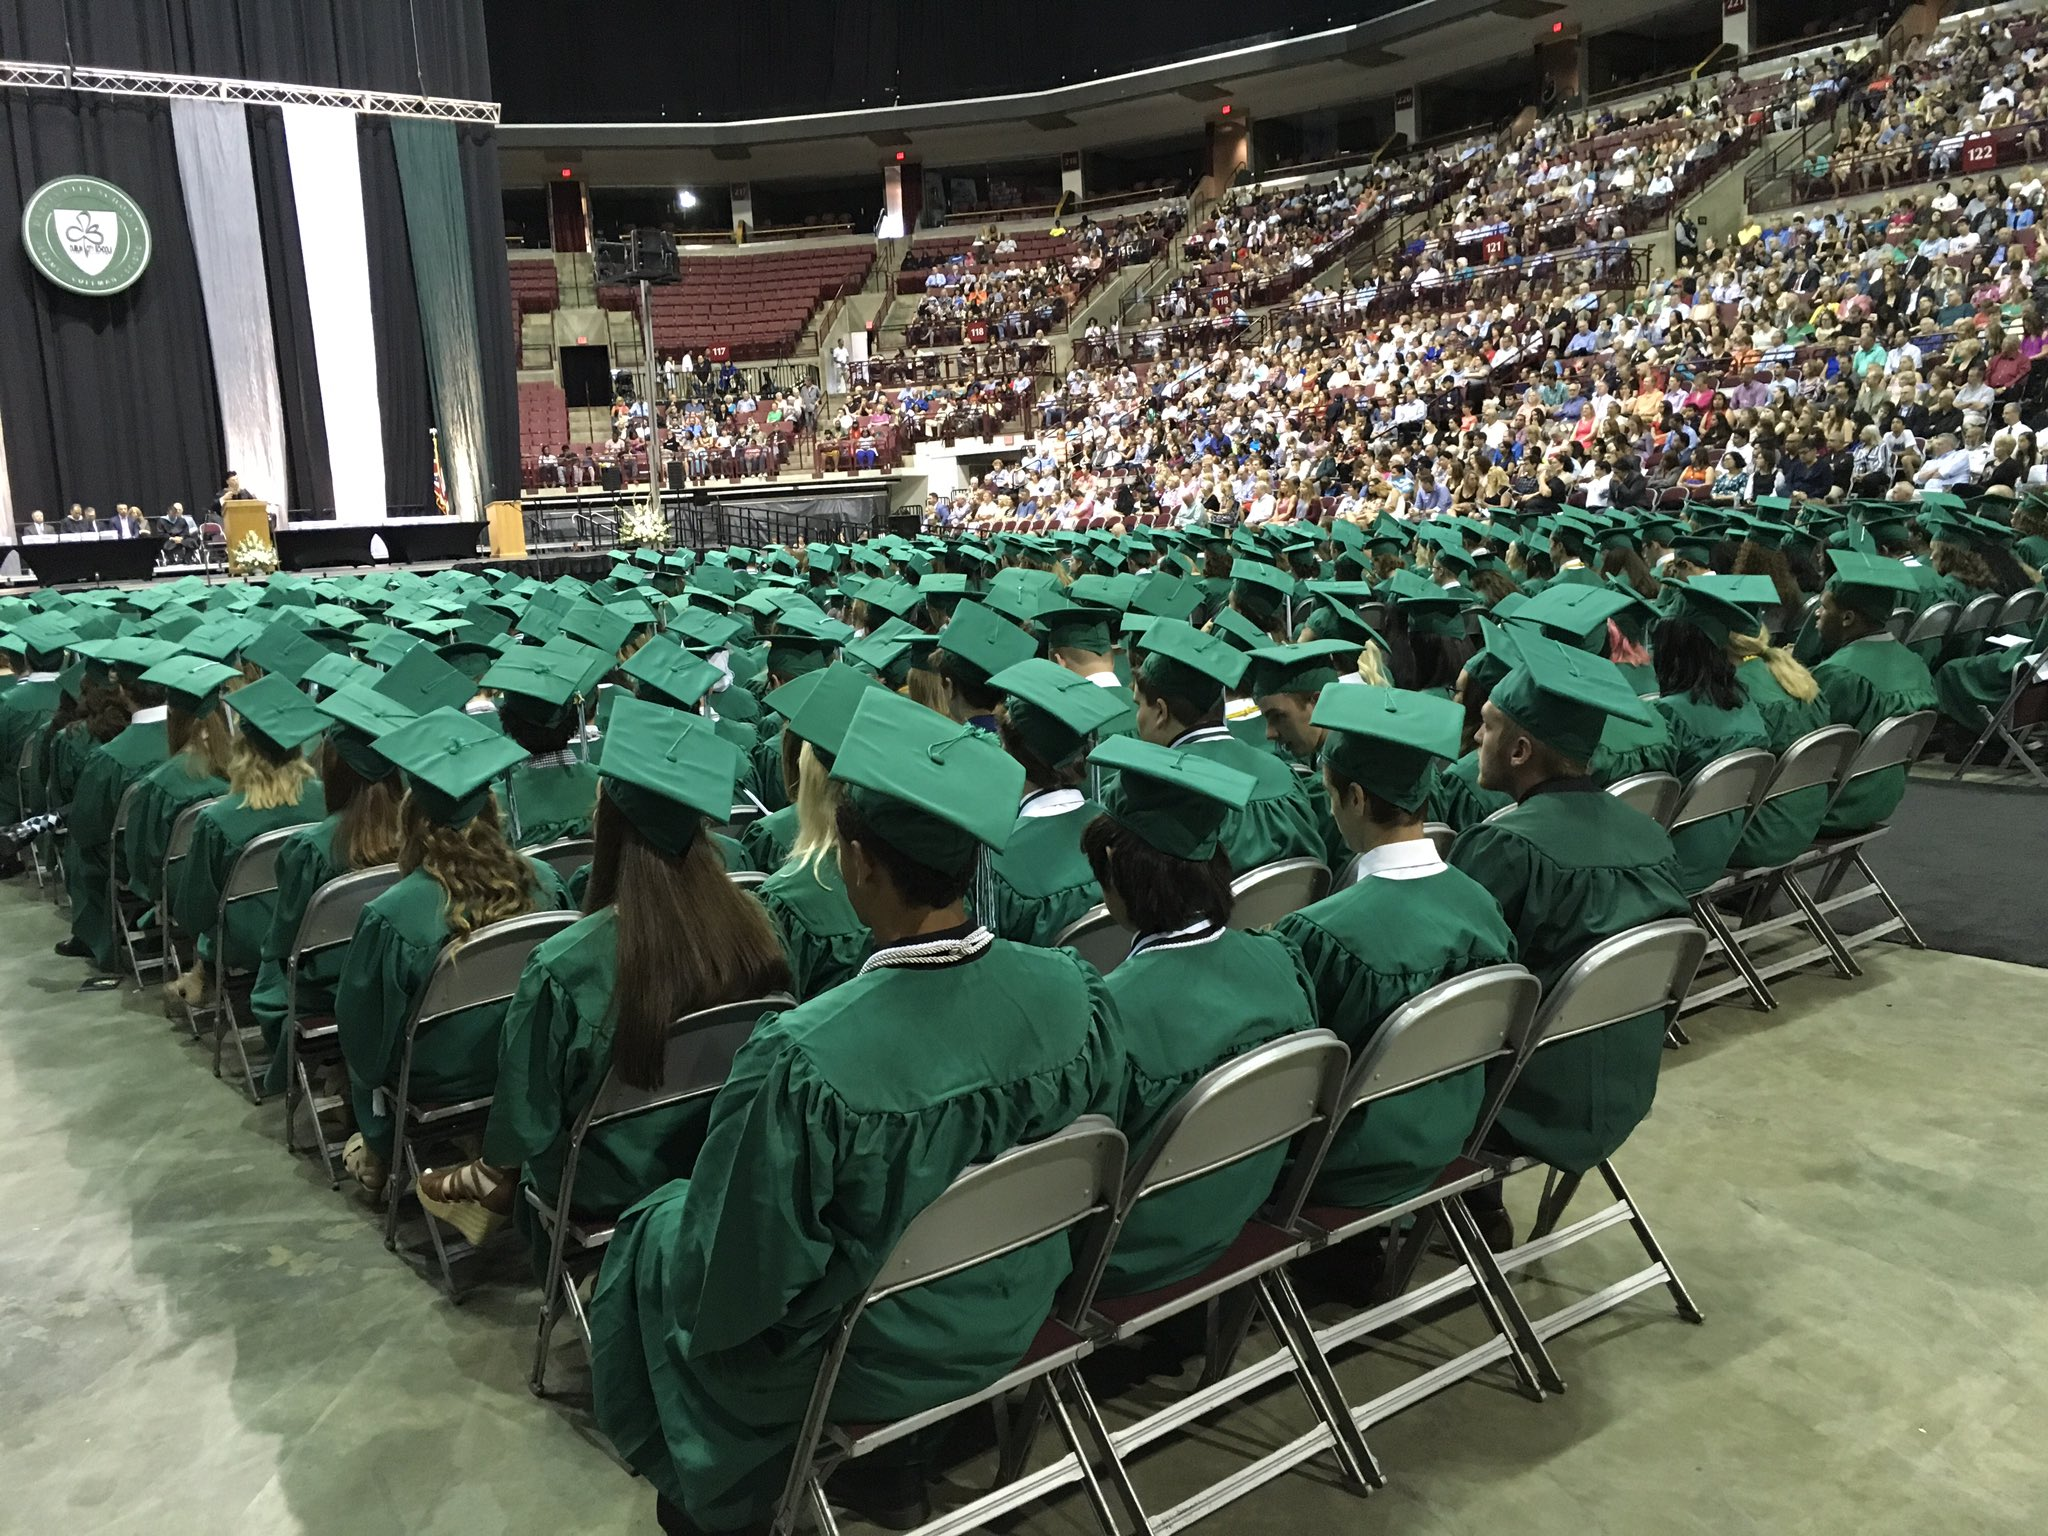 More than 430 students are graduating from @DublinCoffmanHS today. #DCSgrads17 https://t.co/DQTtrmVPcS